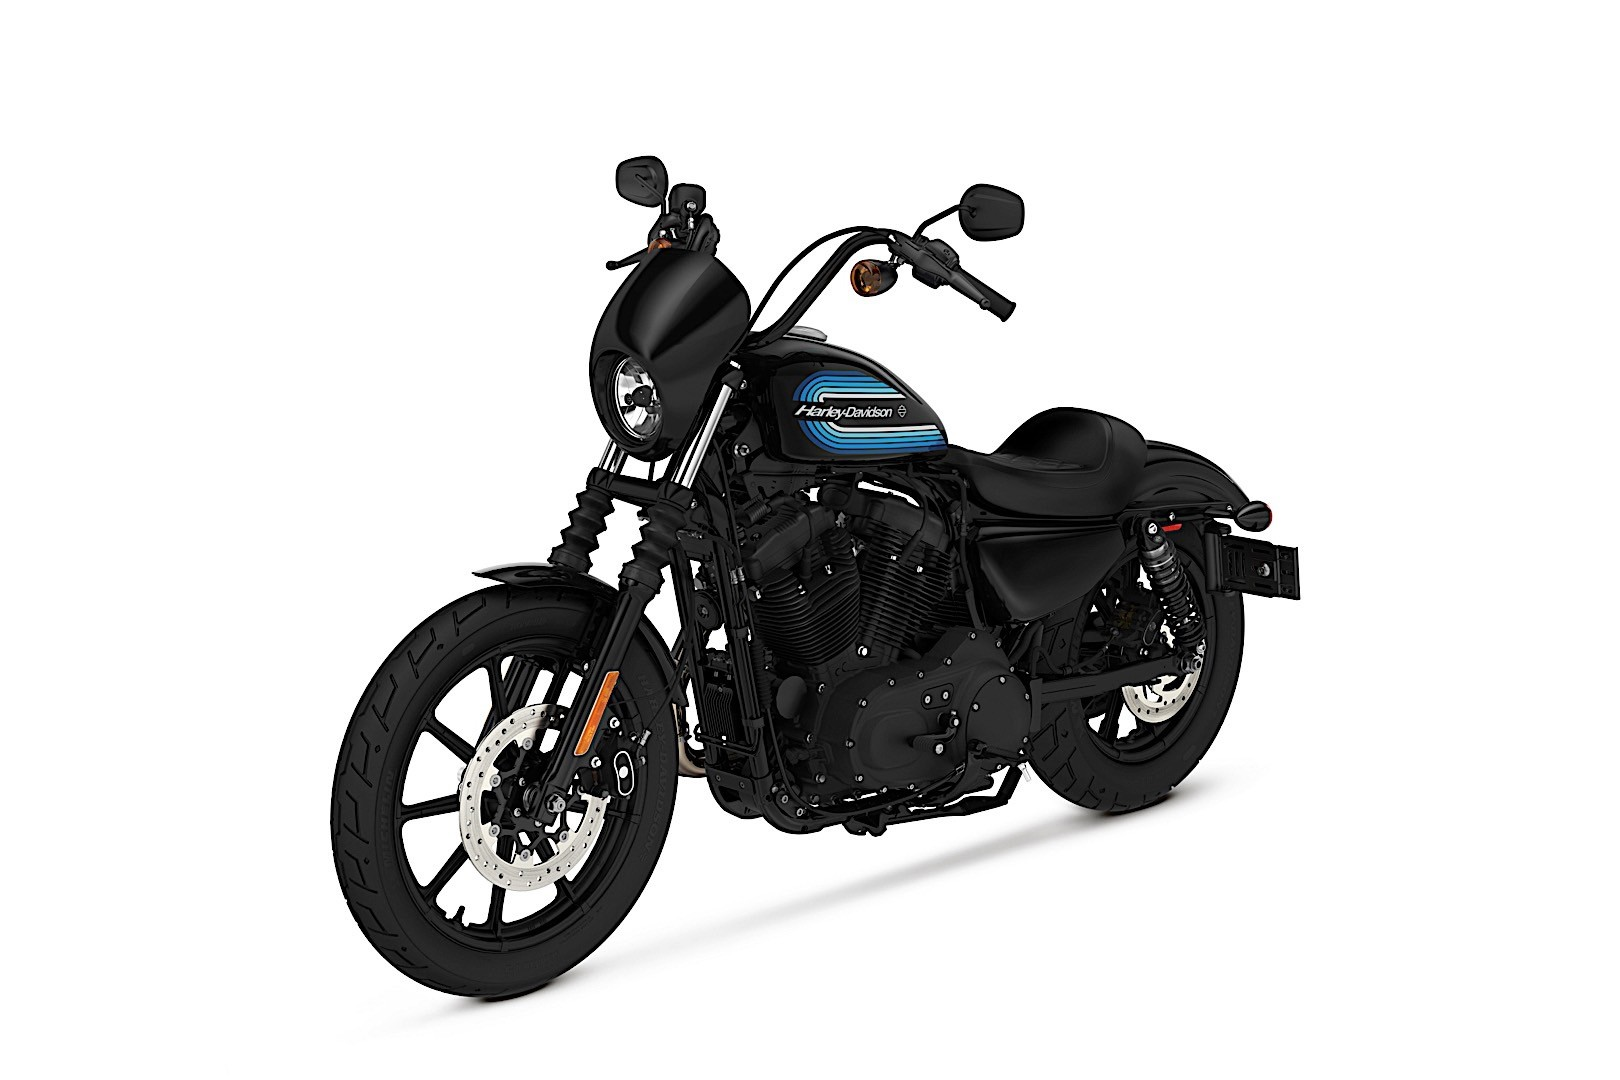 new harley davidson forty eight special and iron 1200 sportster look hot as hell autoevolution. Black Bedroom Furniture Sets. Home Design Ideas